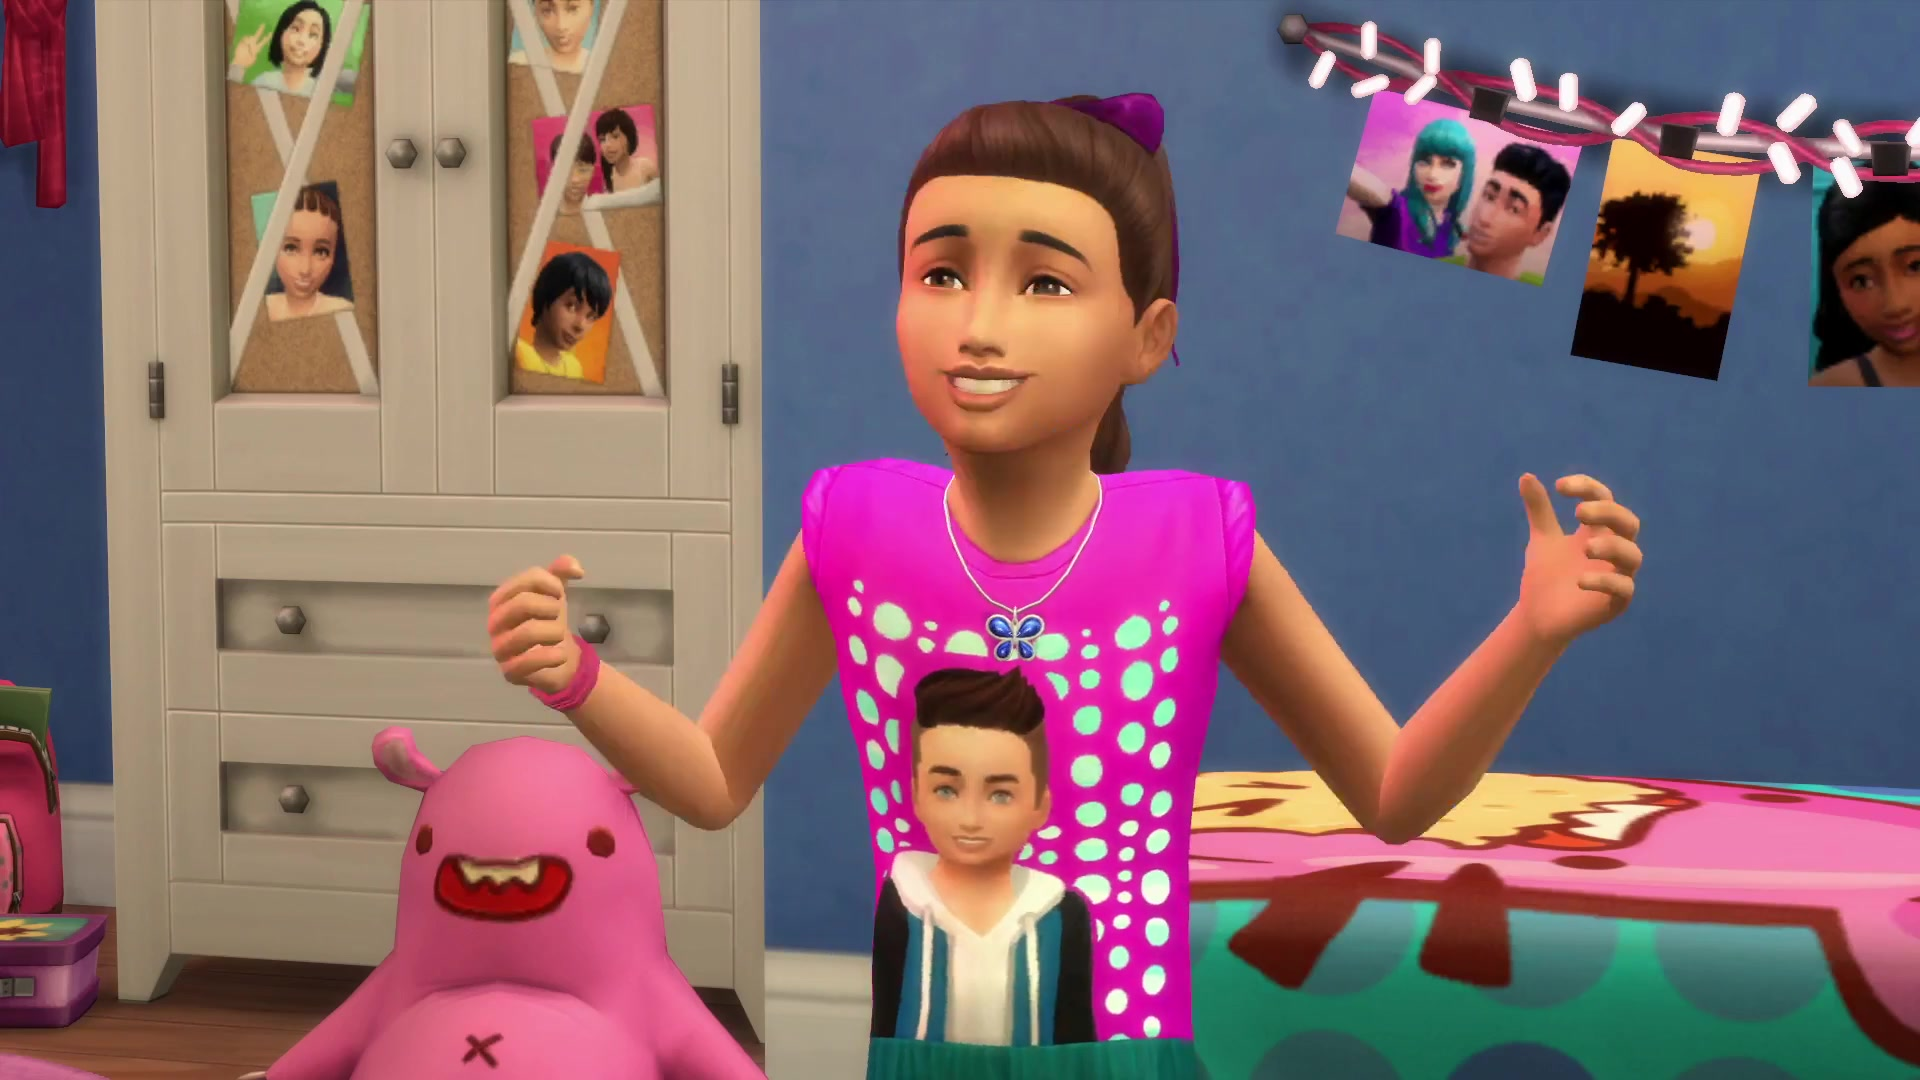 Sims 4 Images The Kids Room Stuff Hd Wallpaper And Background Photos